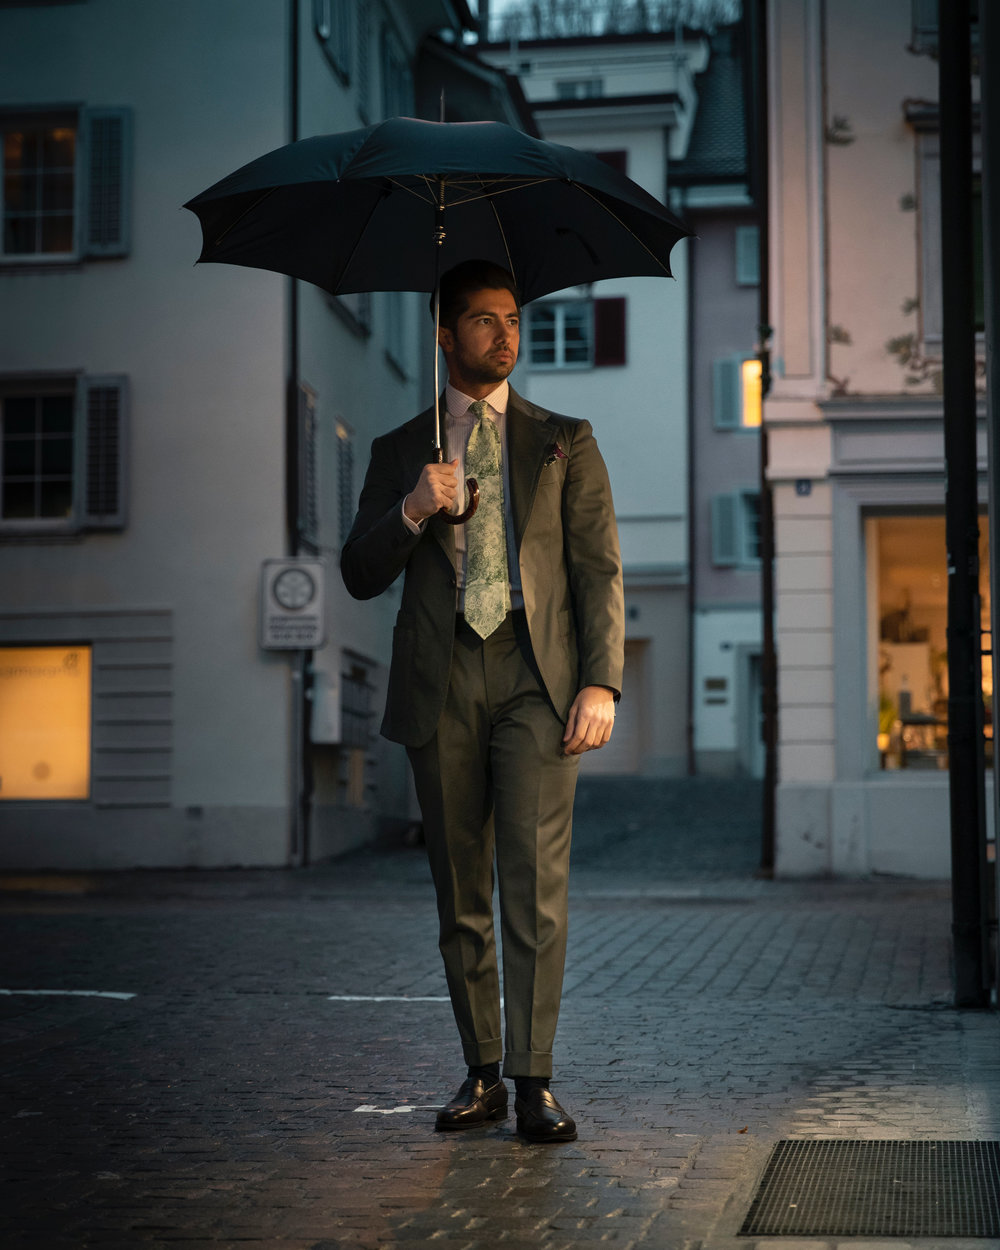 The Amarcord Bespoke. - the supreme art of tailoring